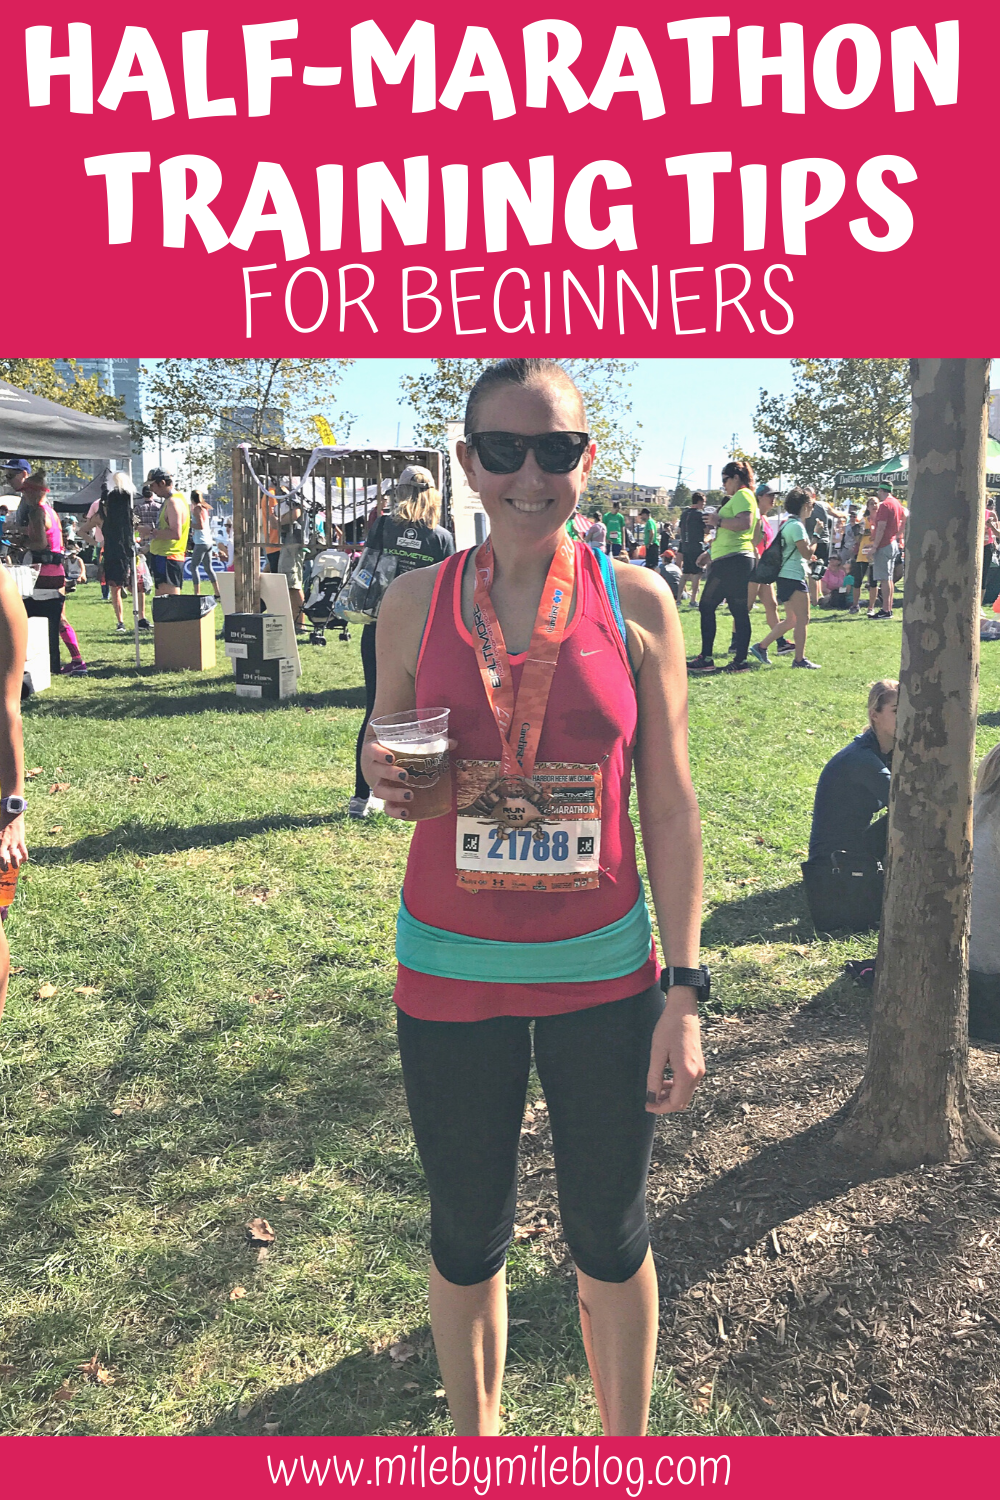 If you are a new runner planning to run a half-marathon, there are a few things you should know before training. Here are some half-marathon training tips for beginners to get you to the start line healthy and prepared. #halfmarathontraining